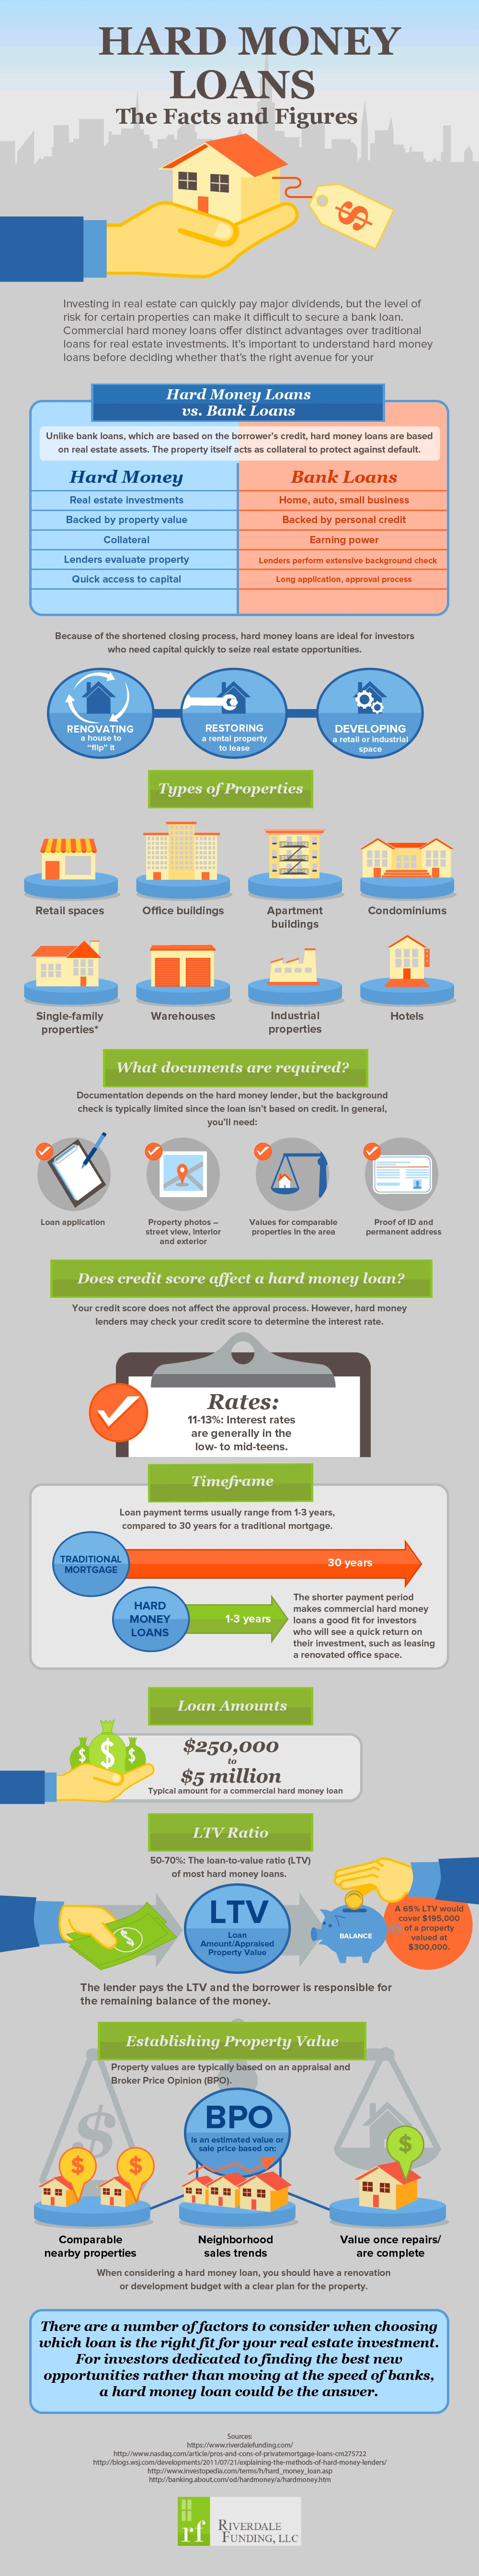 infographic_hard_money_loans